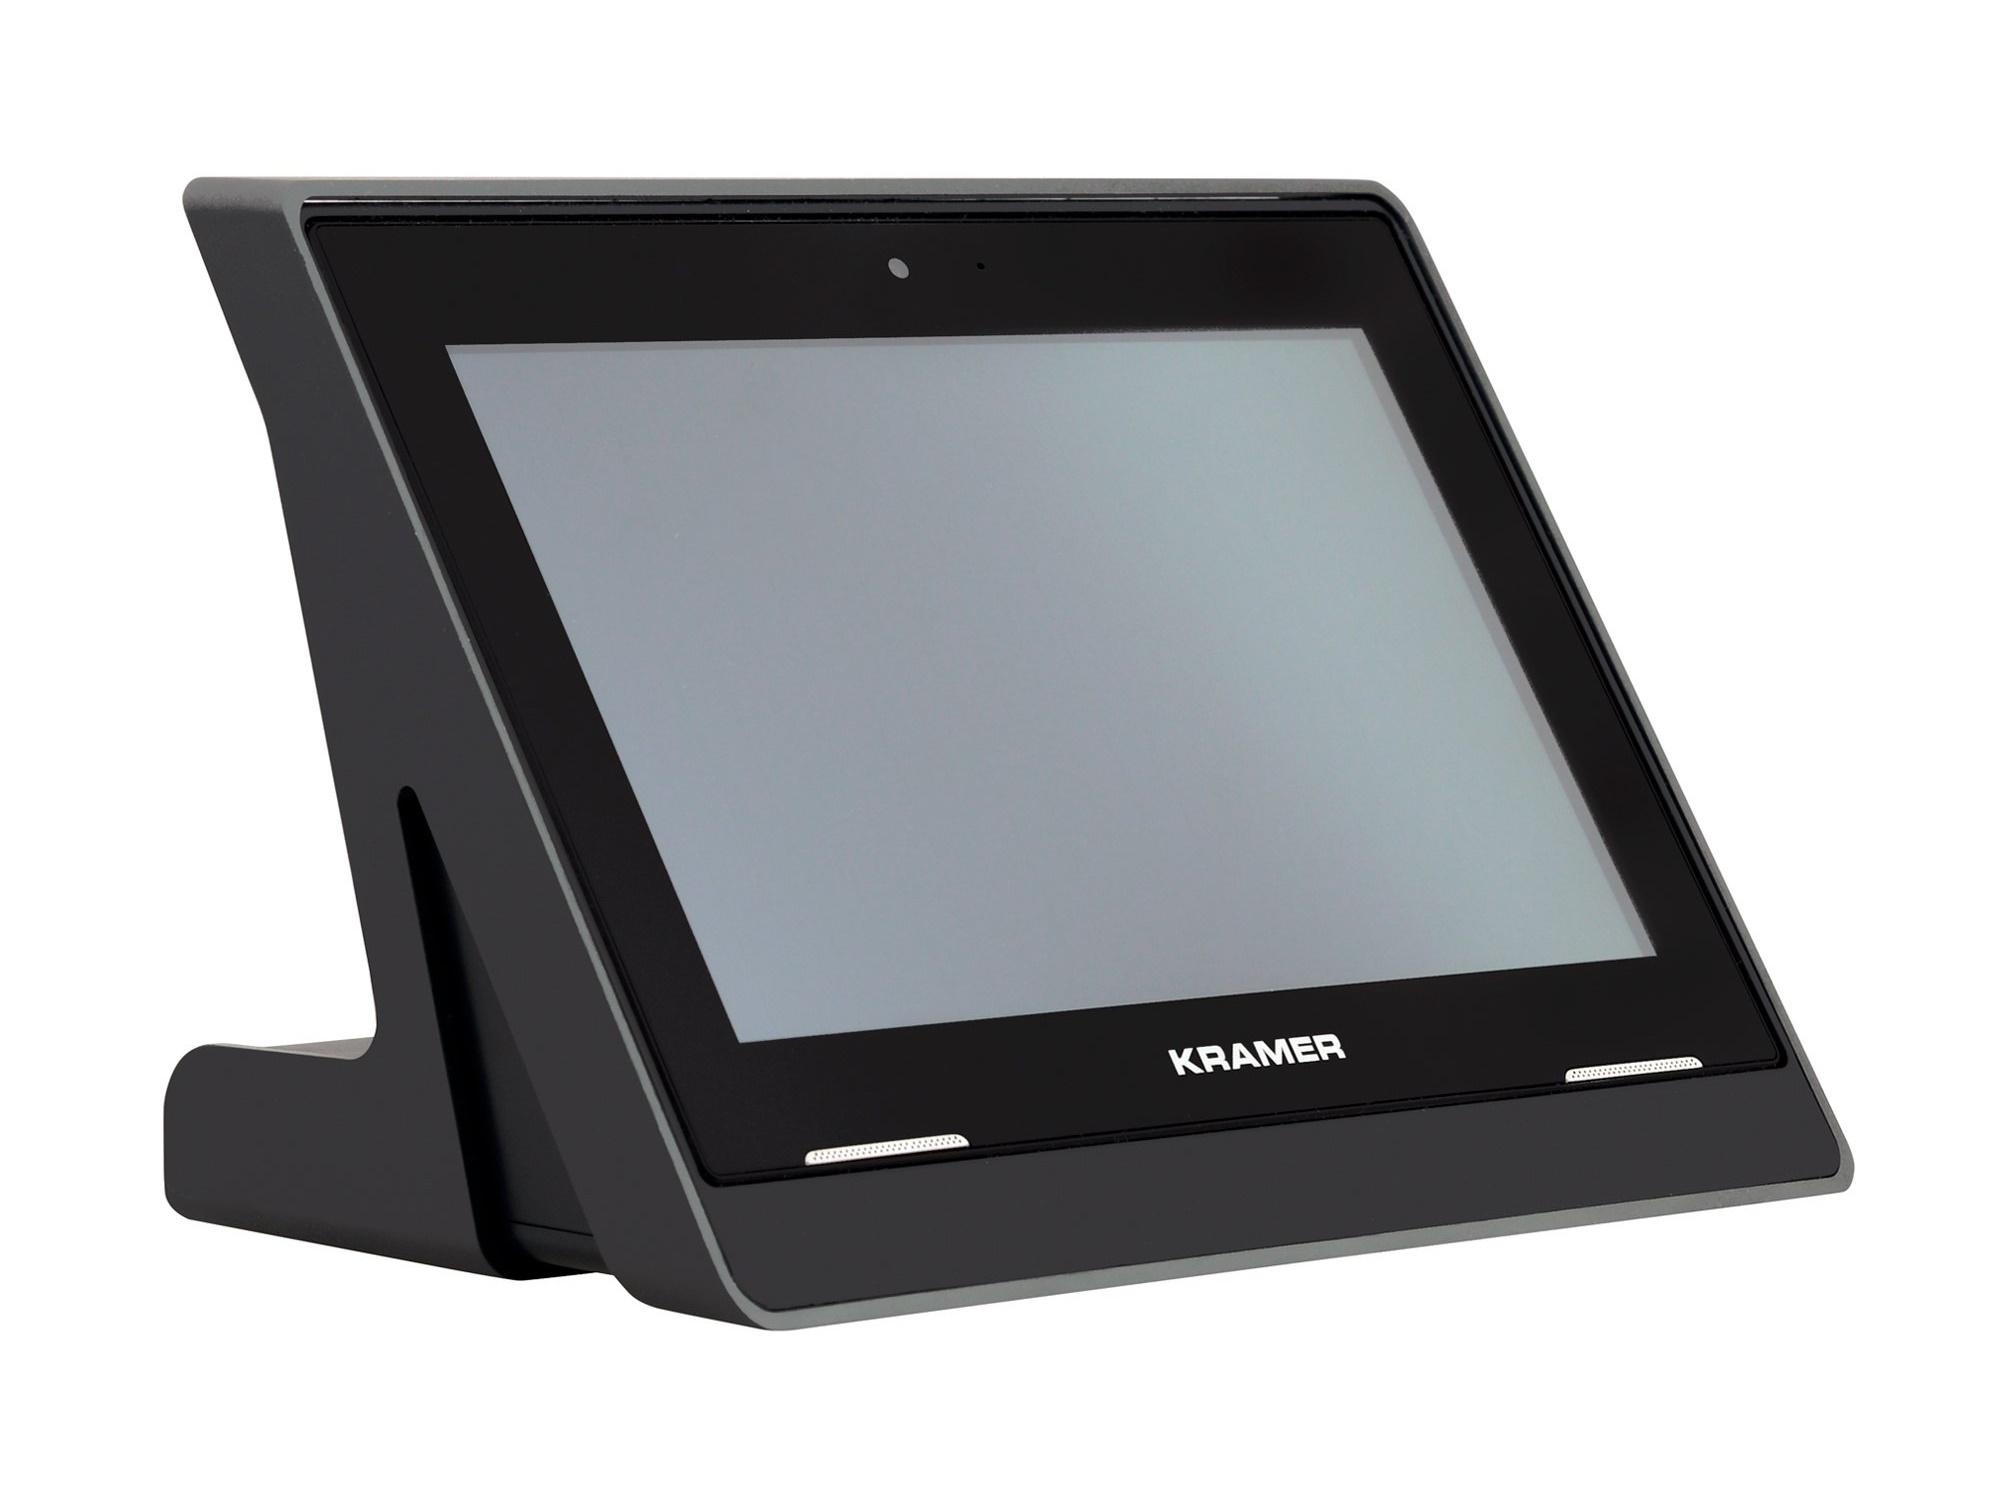 Kramer KT-107S Secured 7-Inch Wall/Table Mount PoE Touch Panel